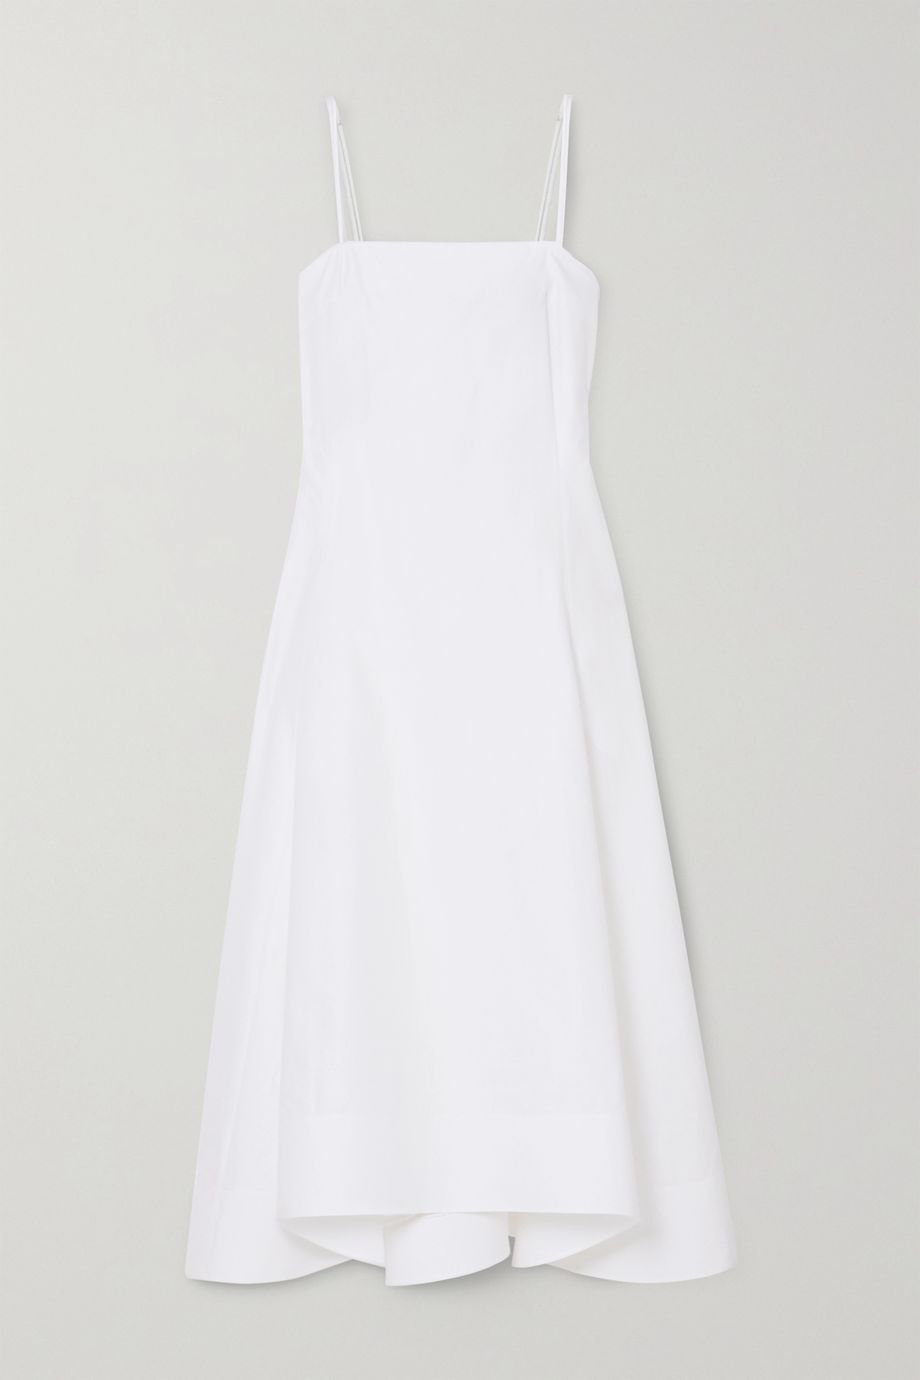 3.1 Phillip Lim Pleated cotton-blend poplin midi dress